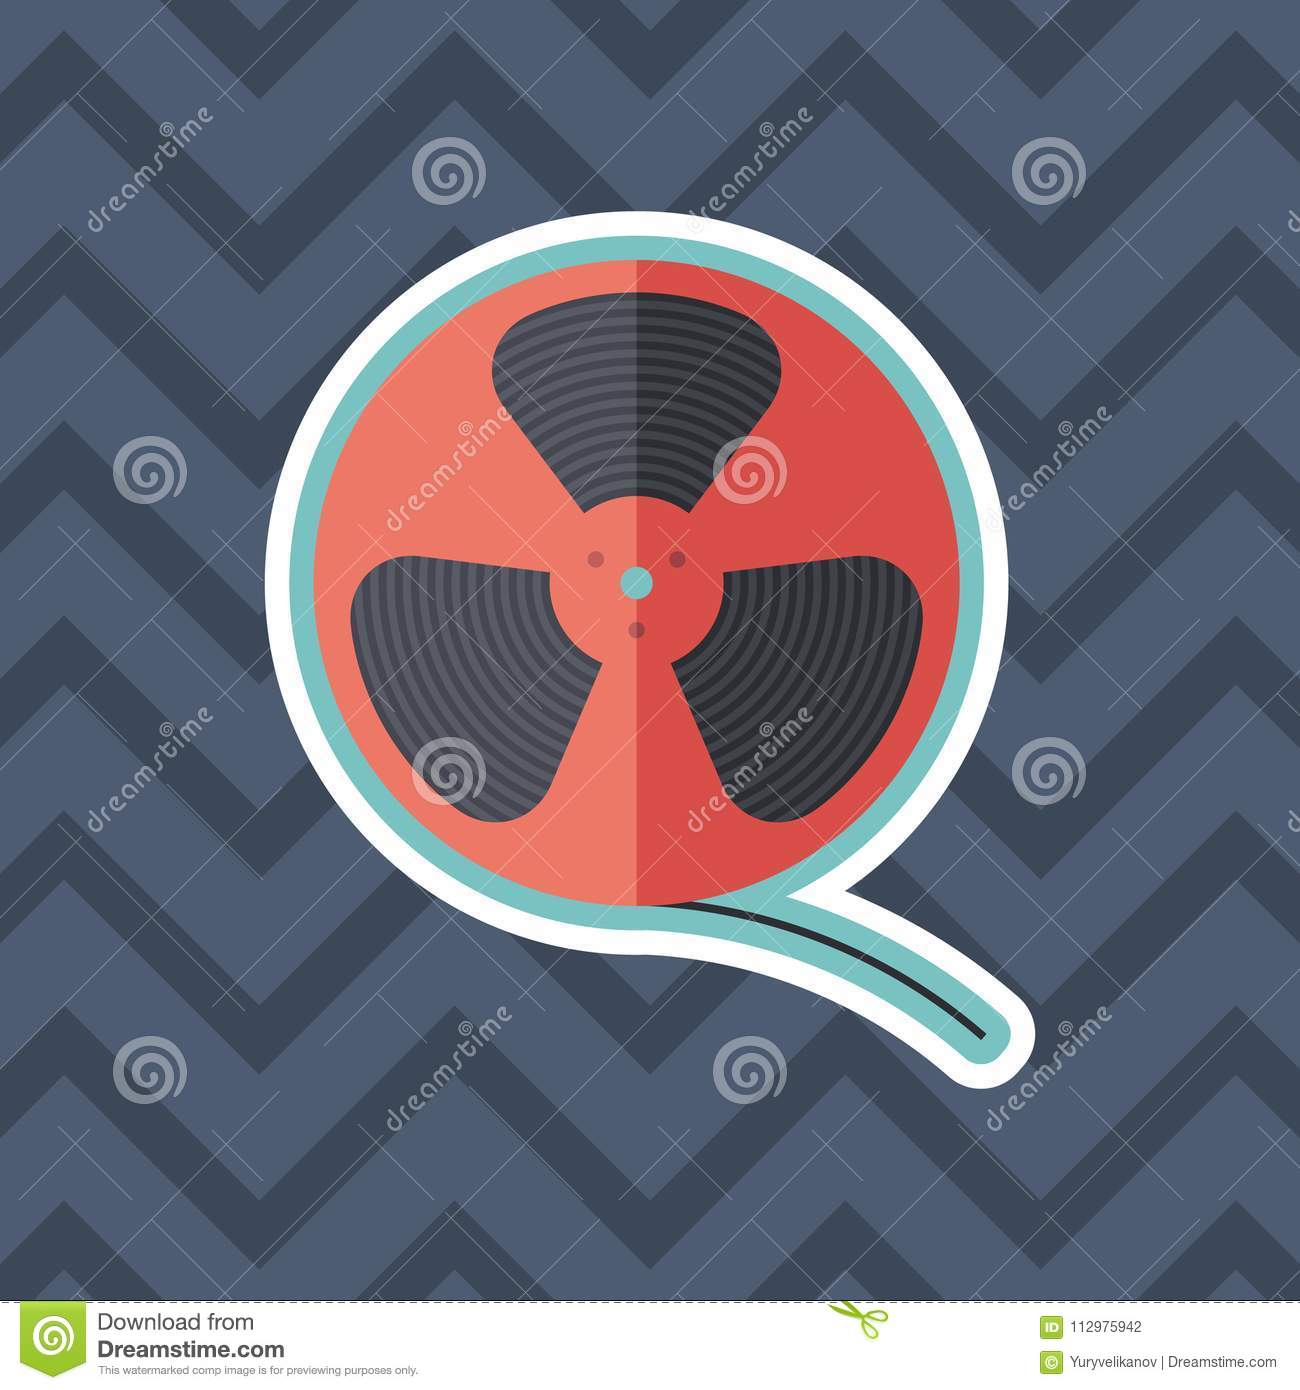 Film reel sticker flat icon with color background.